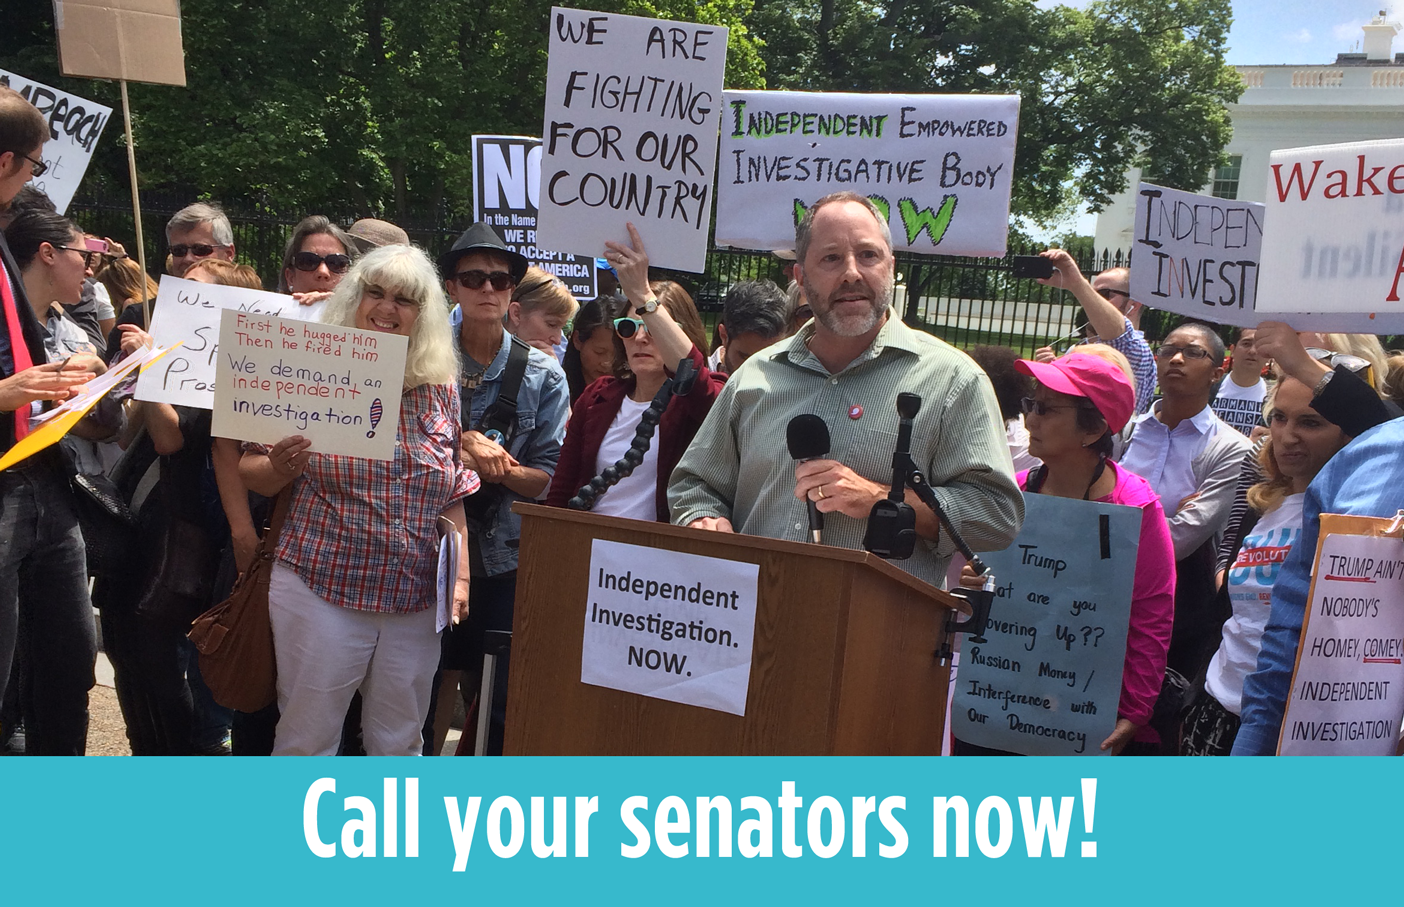 Call your senators - enable images to see more